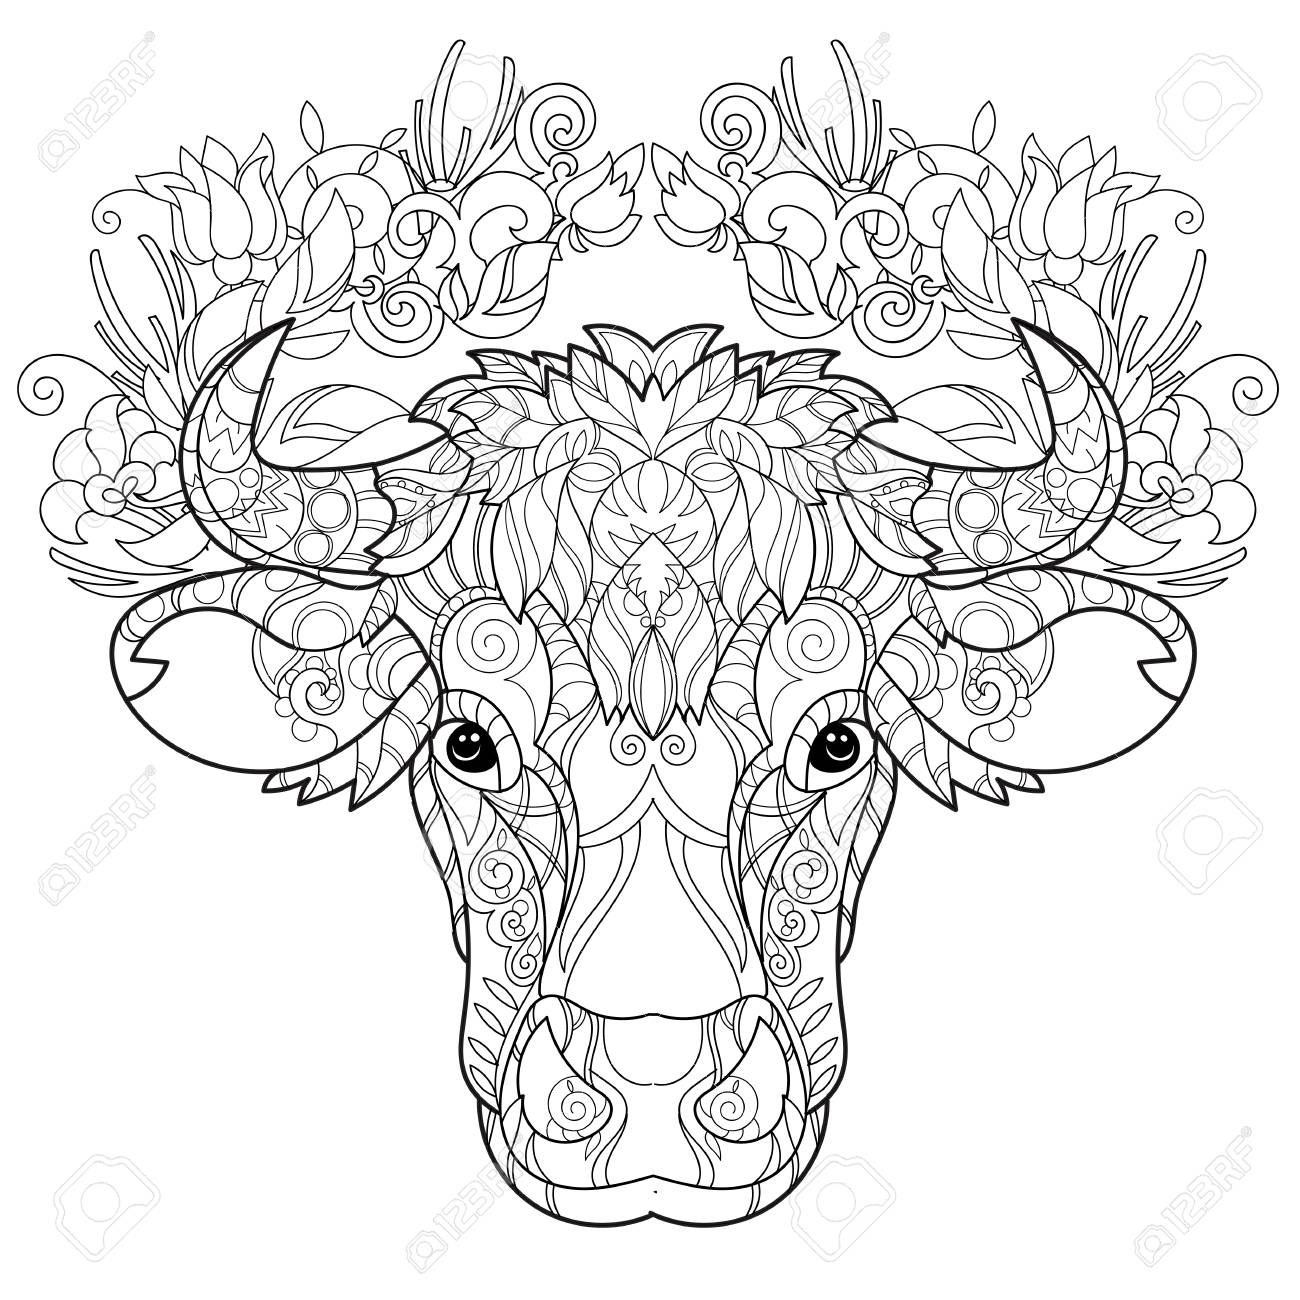 coloring pages to print stock photos royalty free coloring pages